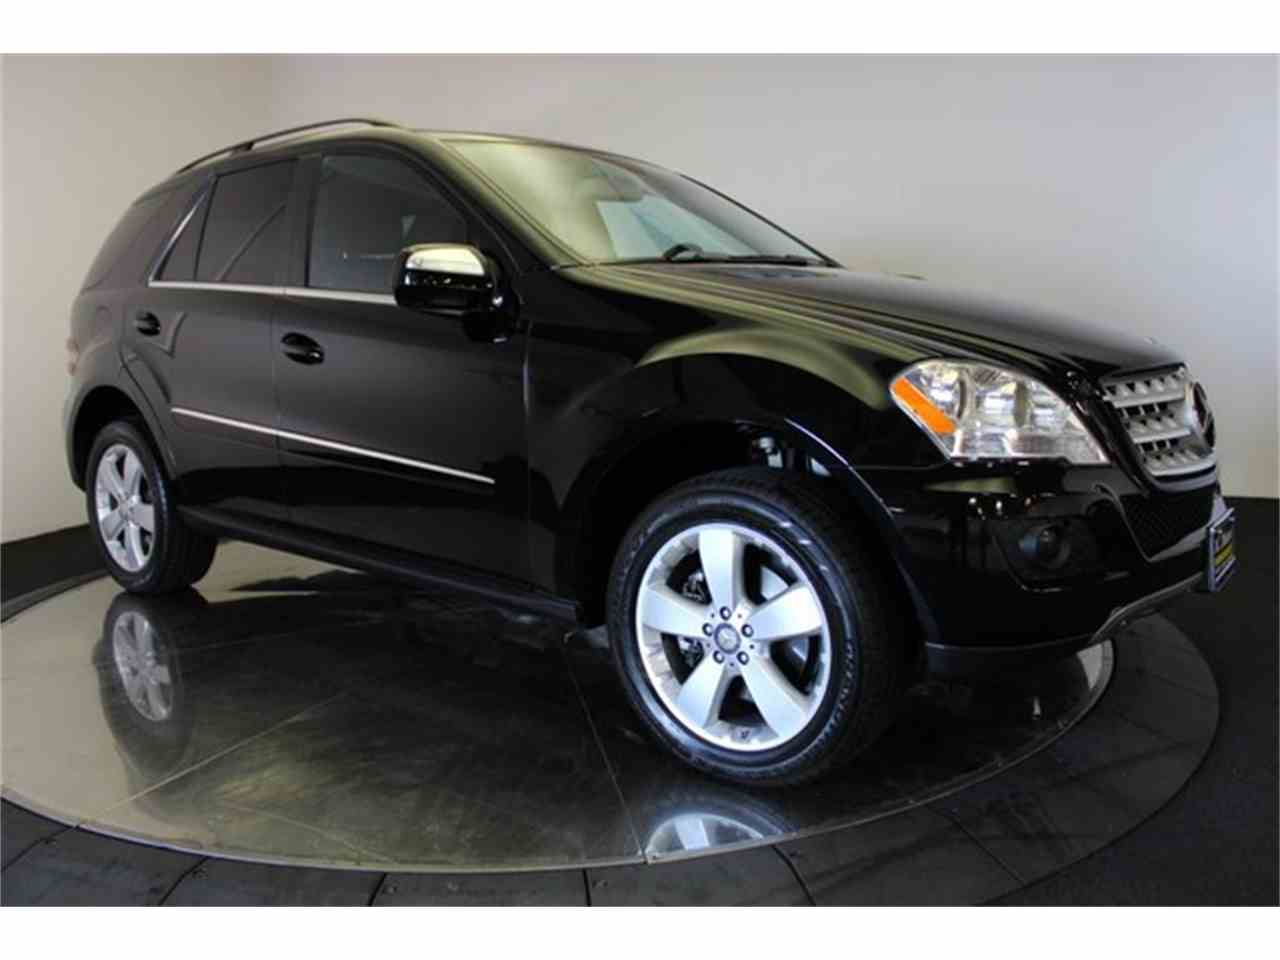 Large Picture of 2010 M-Class located in California - $19,800.00 - JC2Q